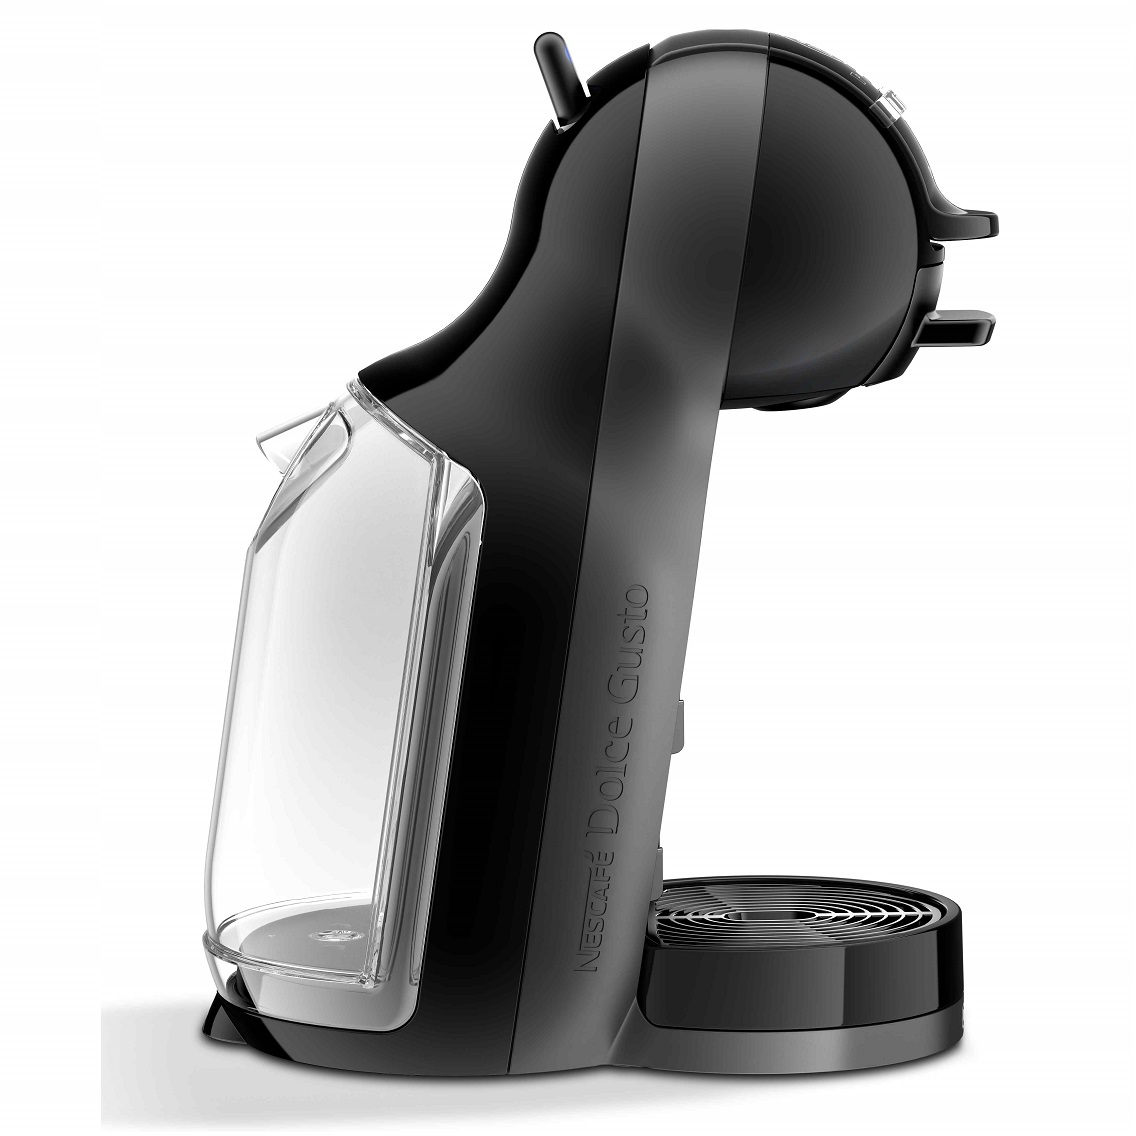 Cafetera Dolce Gusto mini EDG305 GR - 3